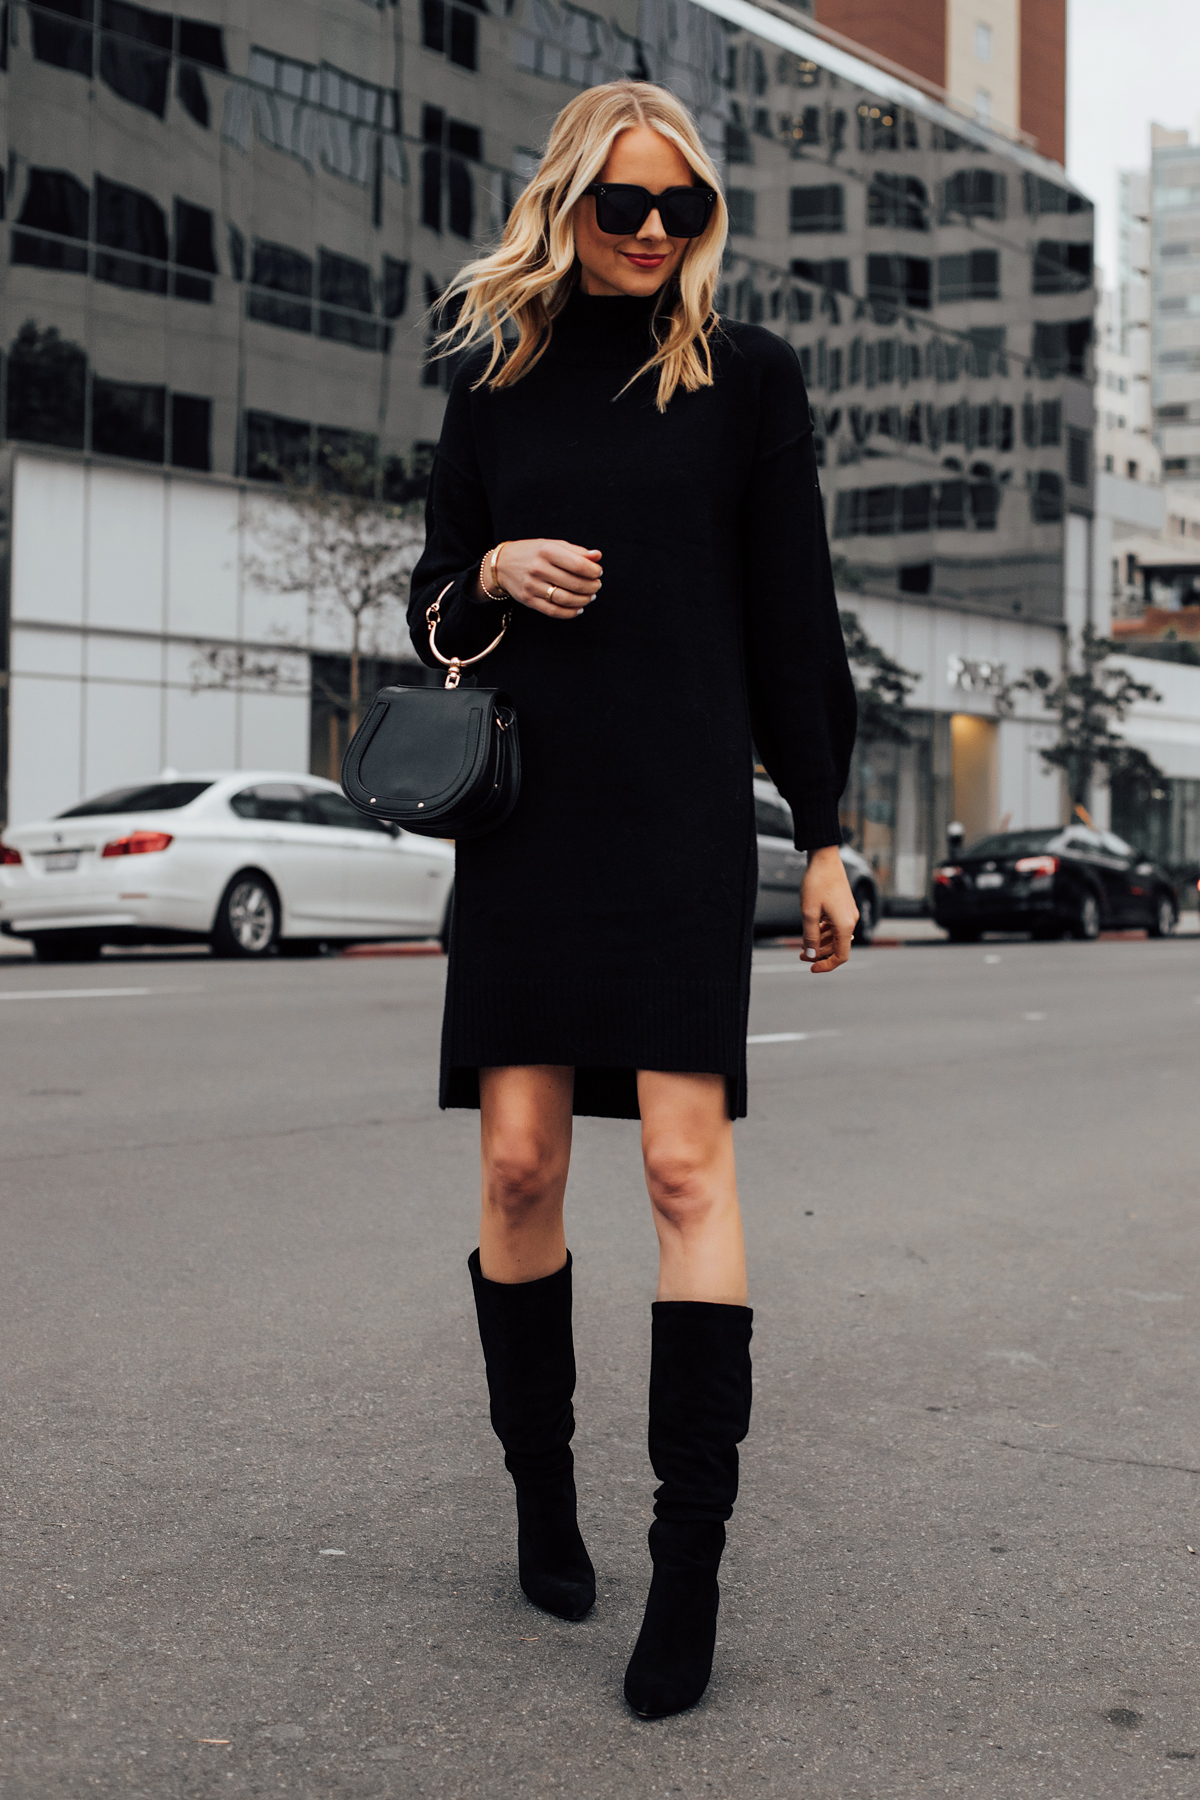 Blonde Woman Wearing Black Sweater Dress Black Tall Boots Black Clutch Handbag Fashion Jackson San Diego Fashion Blogger Street Style